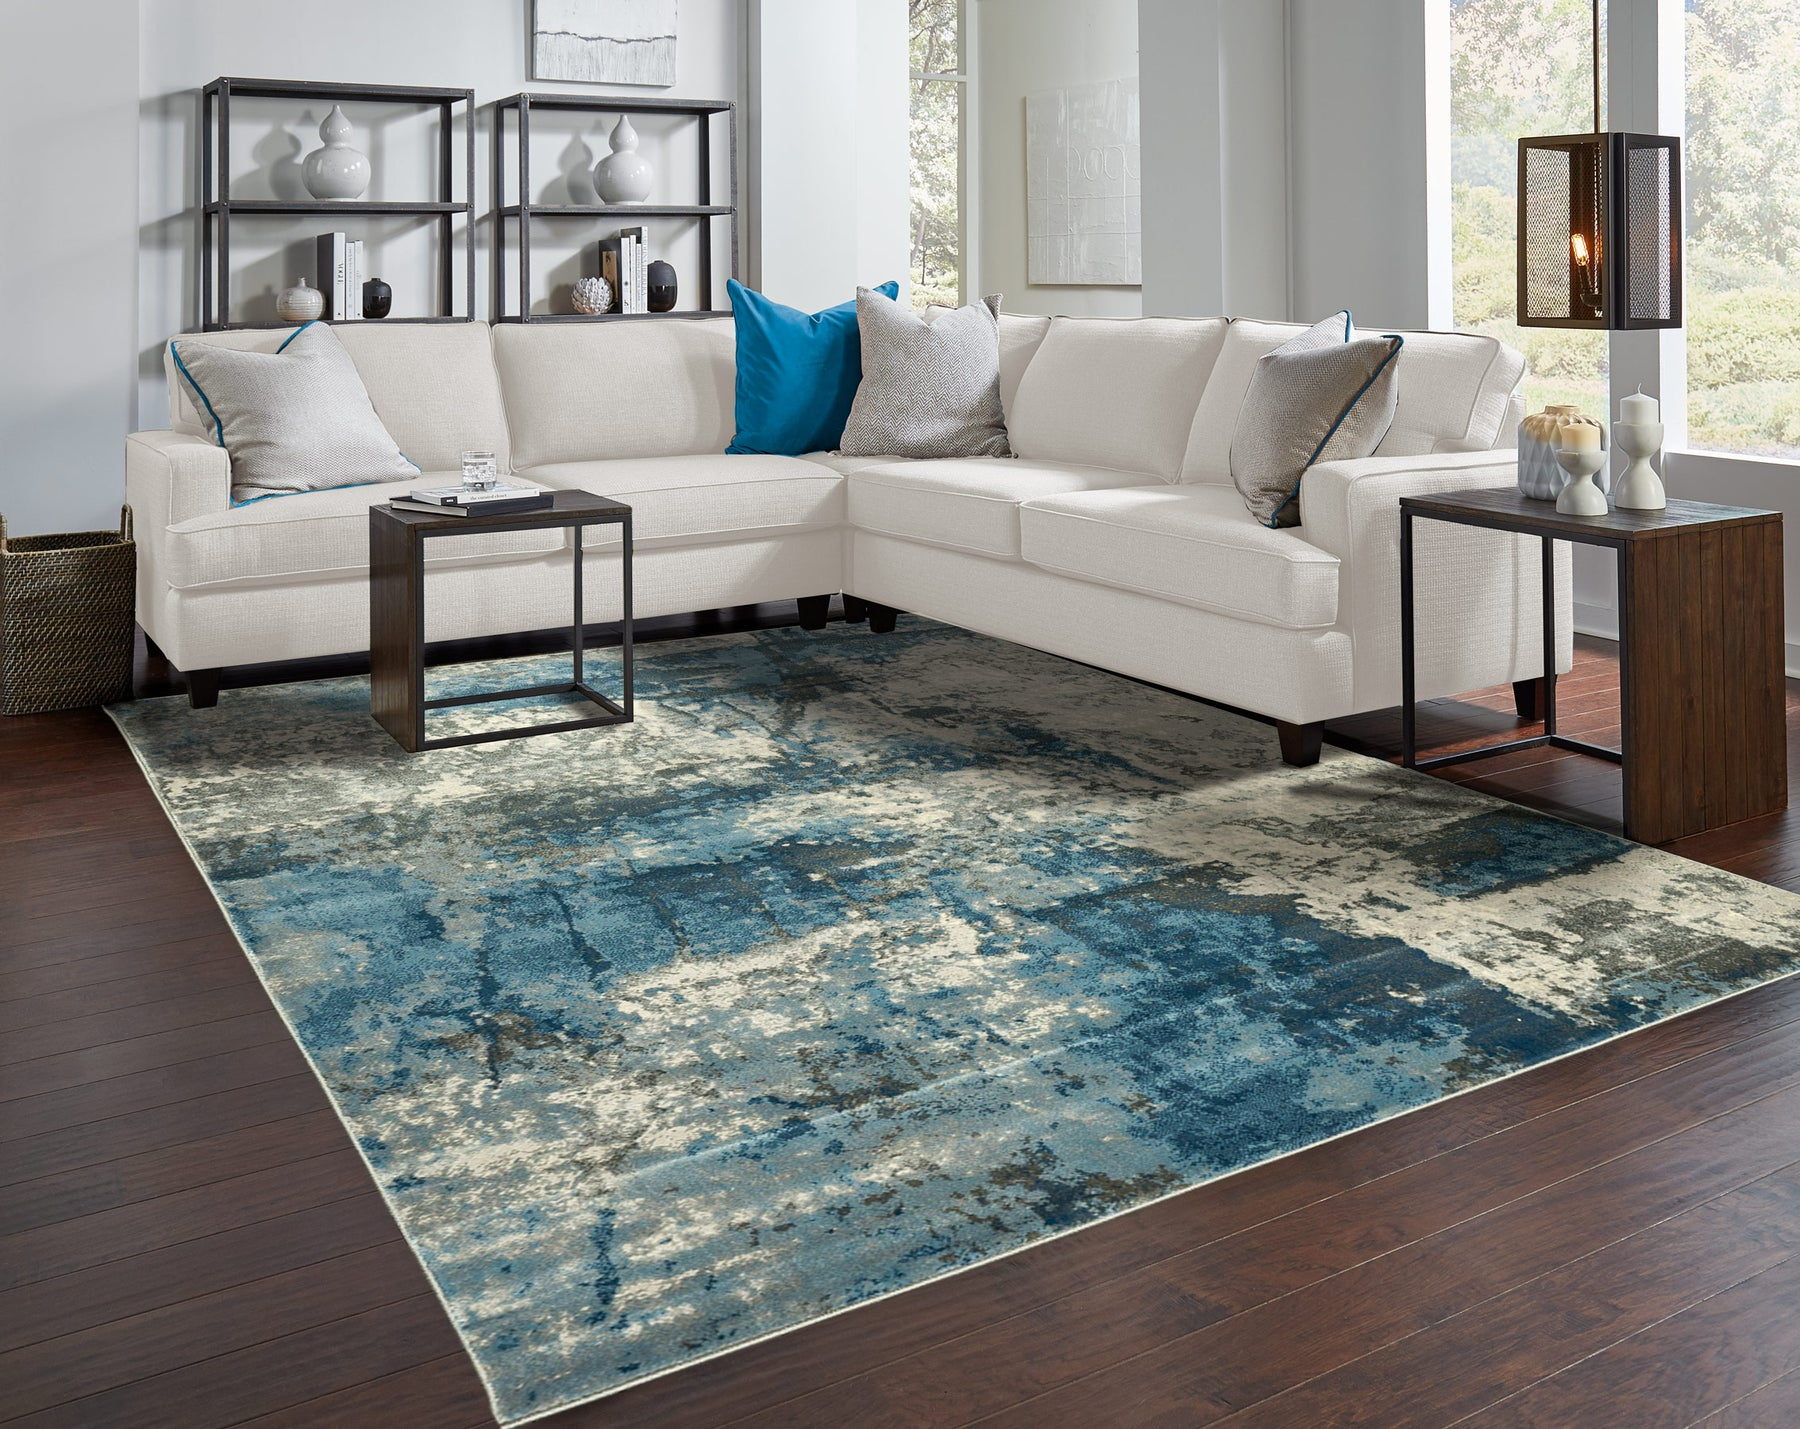 10 Perfect Rug Types for a Coastal Look